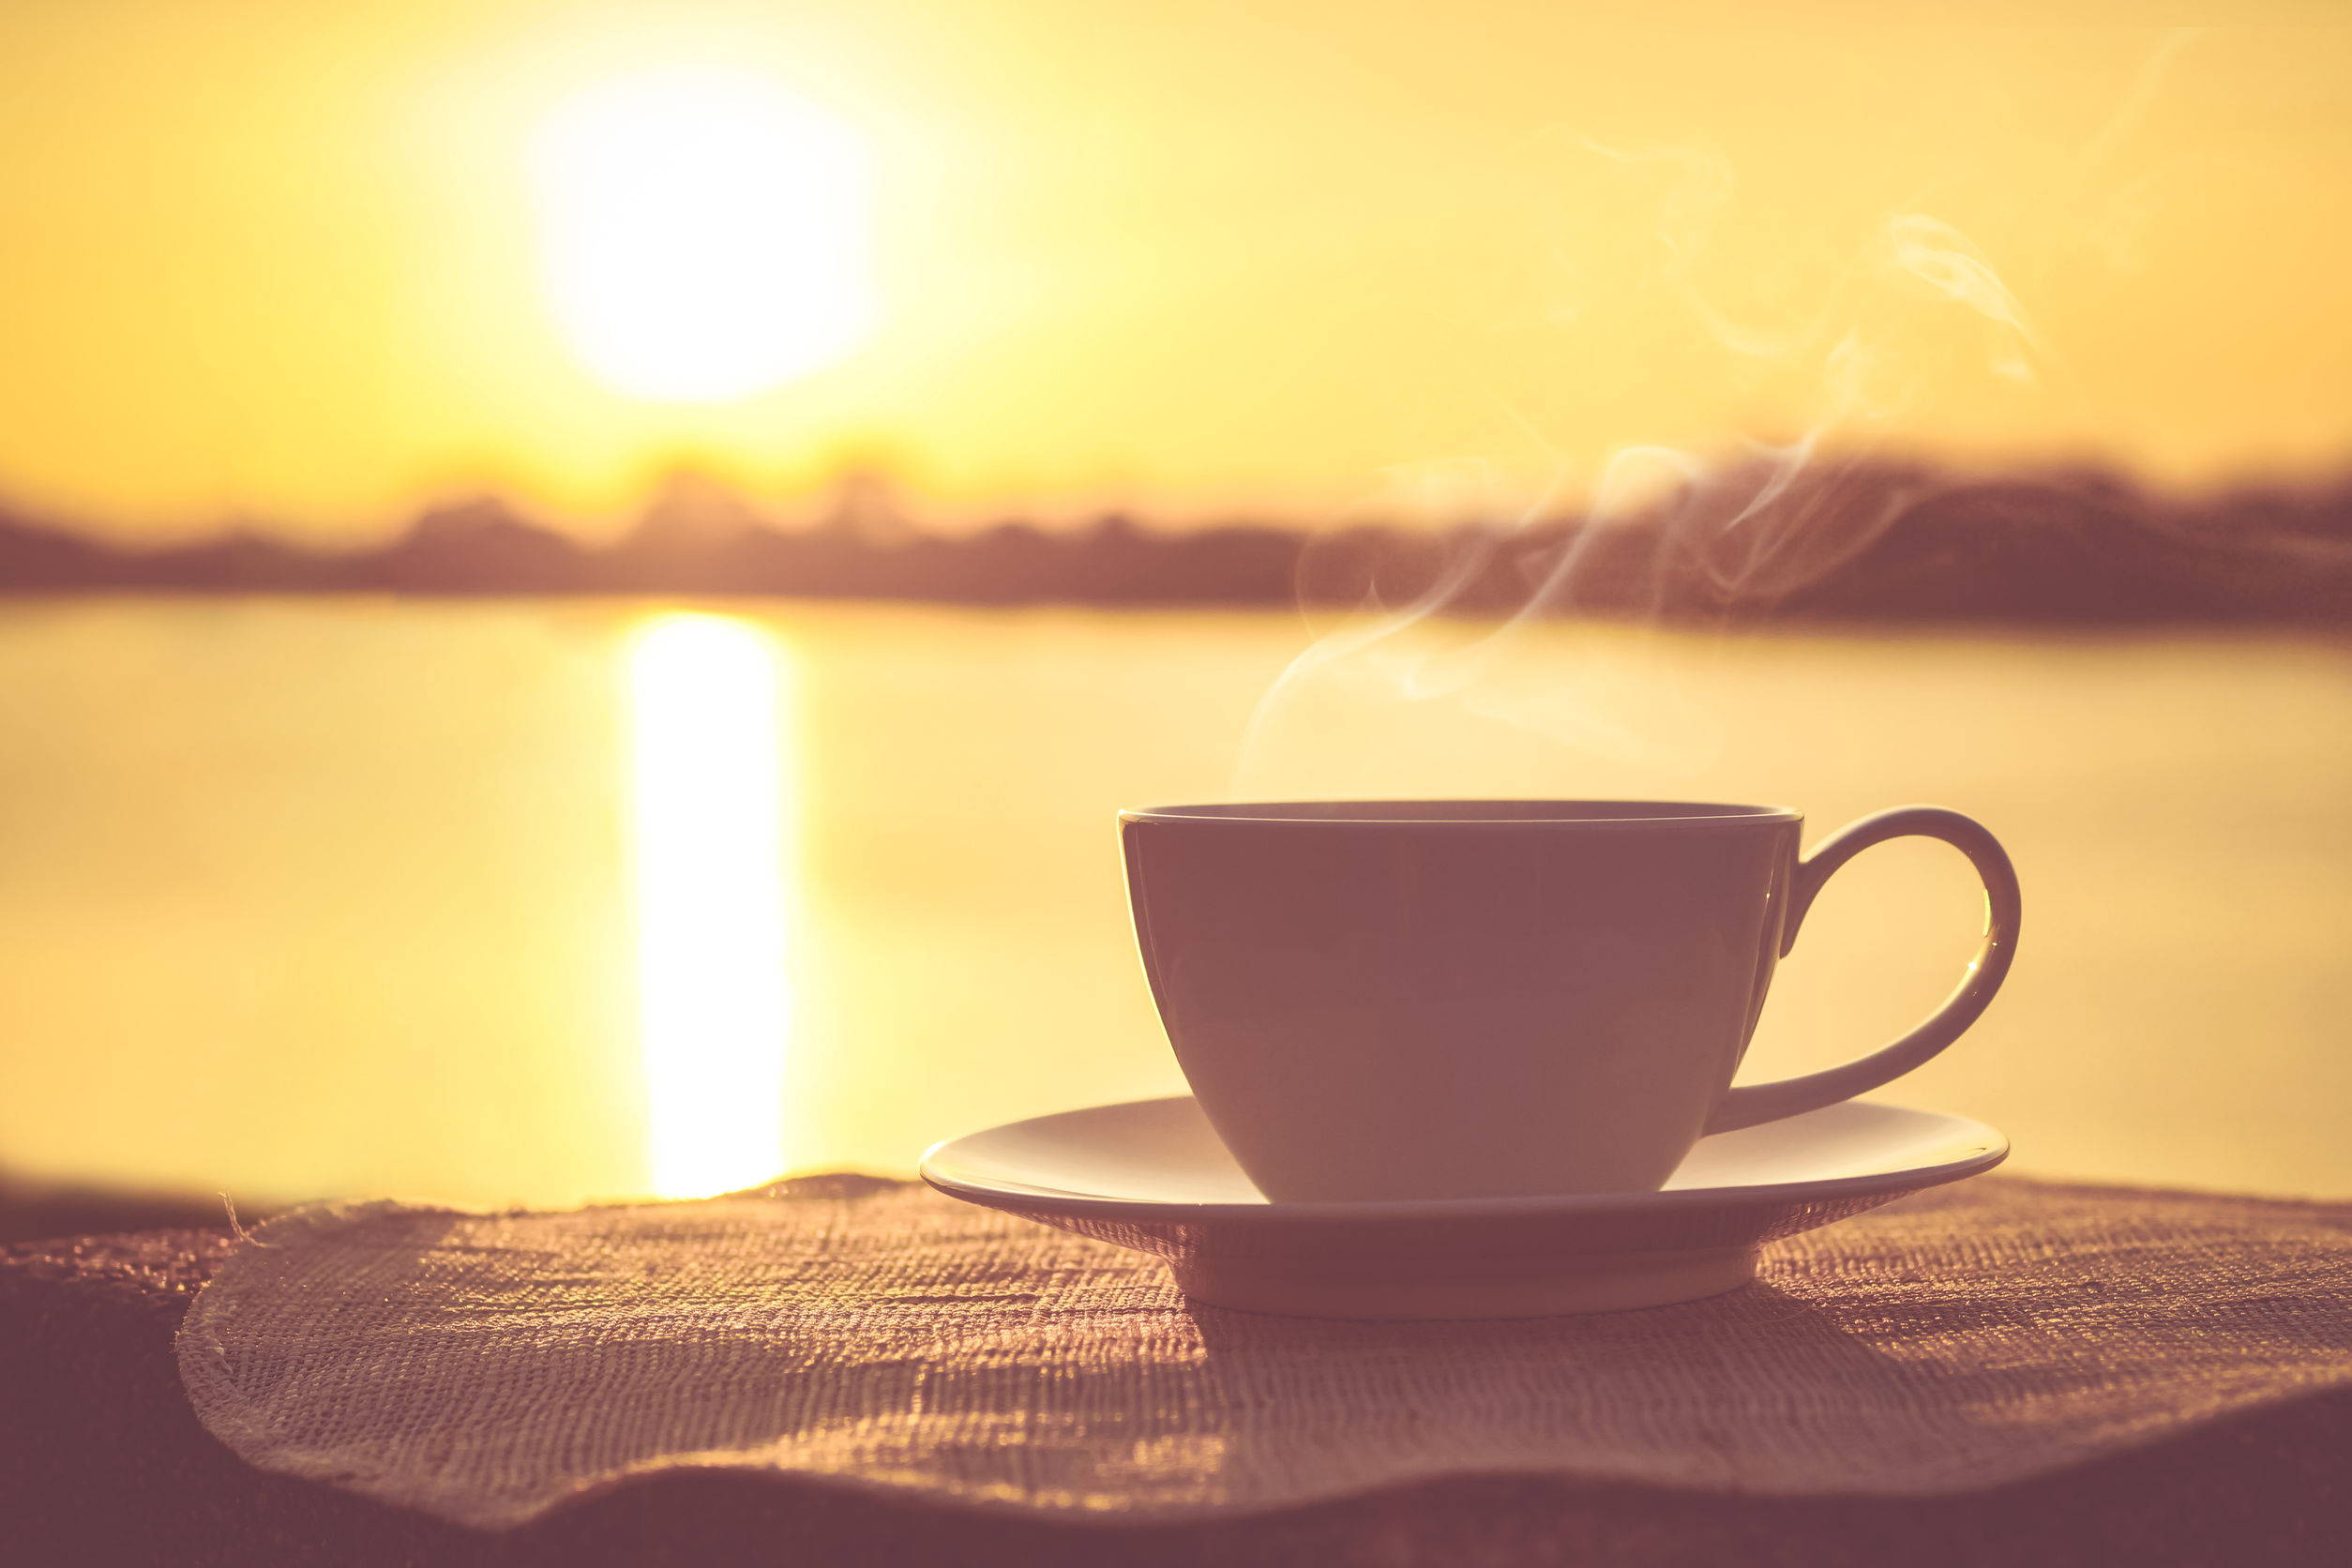 A small cup of Perk Energy sitting on a plate outside with a sunrise over a lake in the background